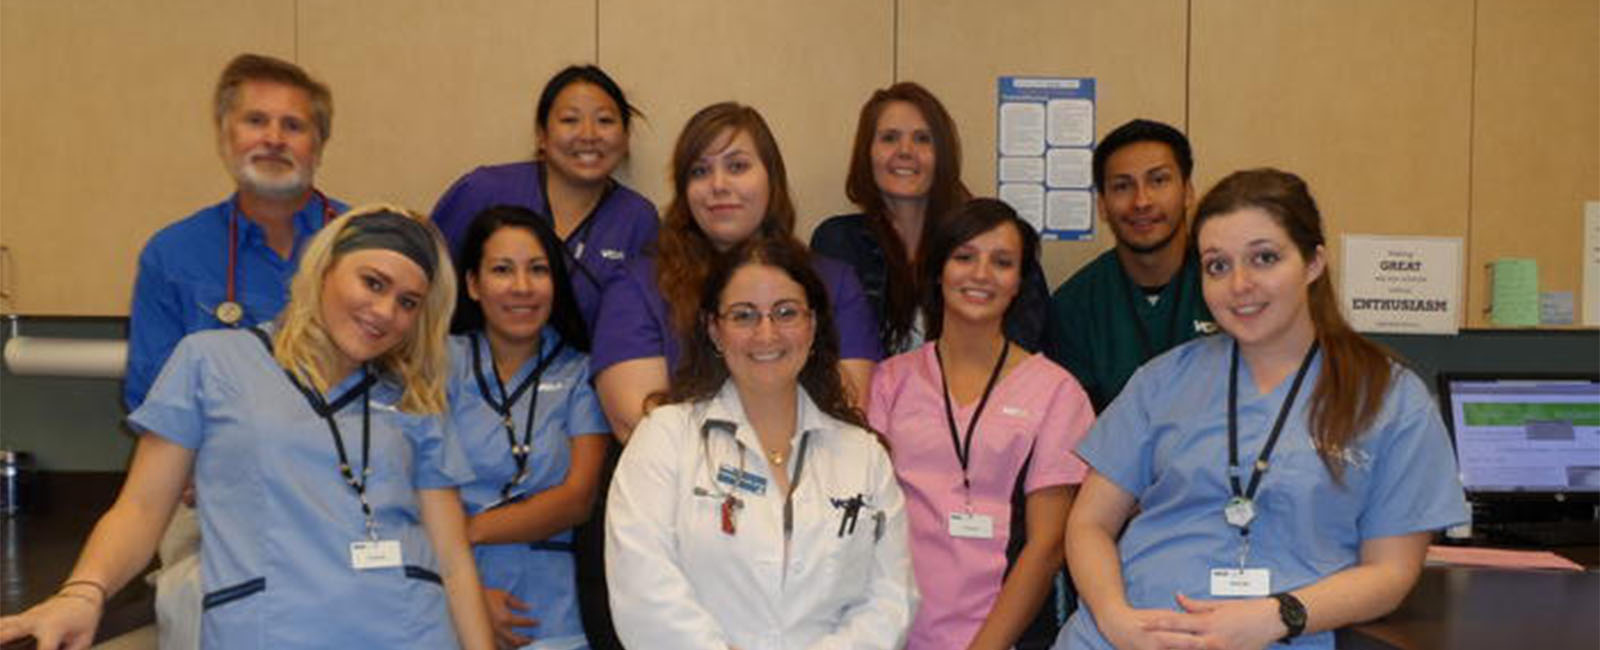 Homepage Team Picture of VCA All Pet Animal Hospital Taylorsville